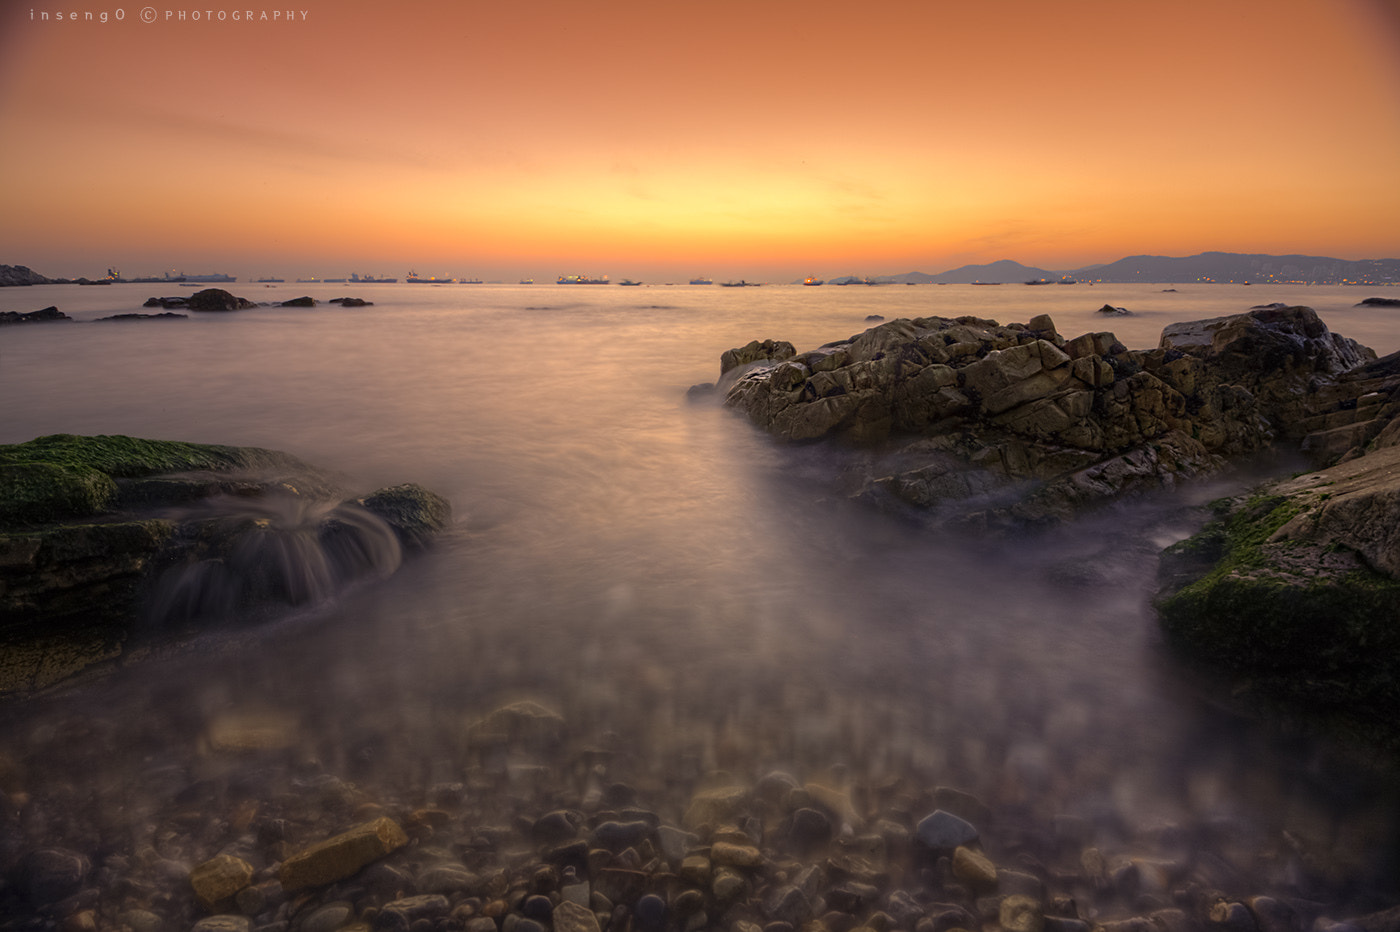 Photograph TWILIGHT IN SEASIDE by chan-wook Kim on 500px